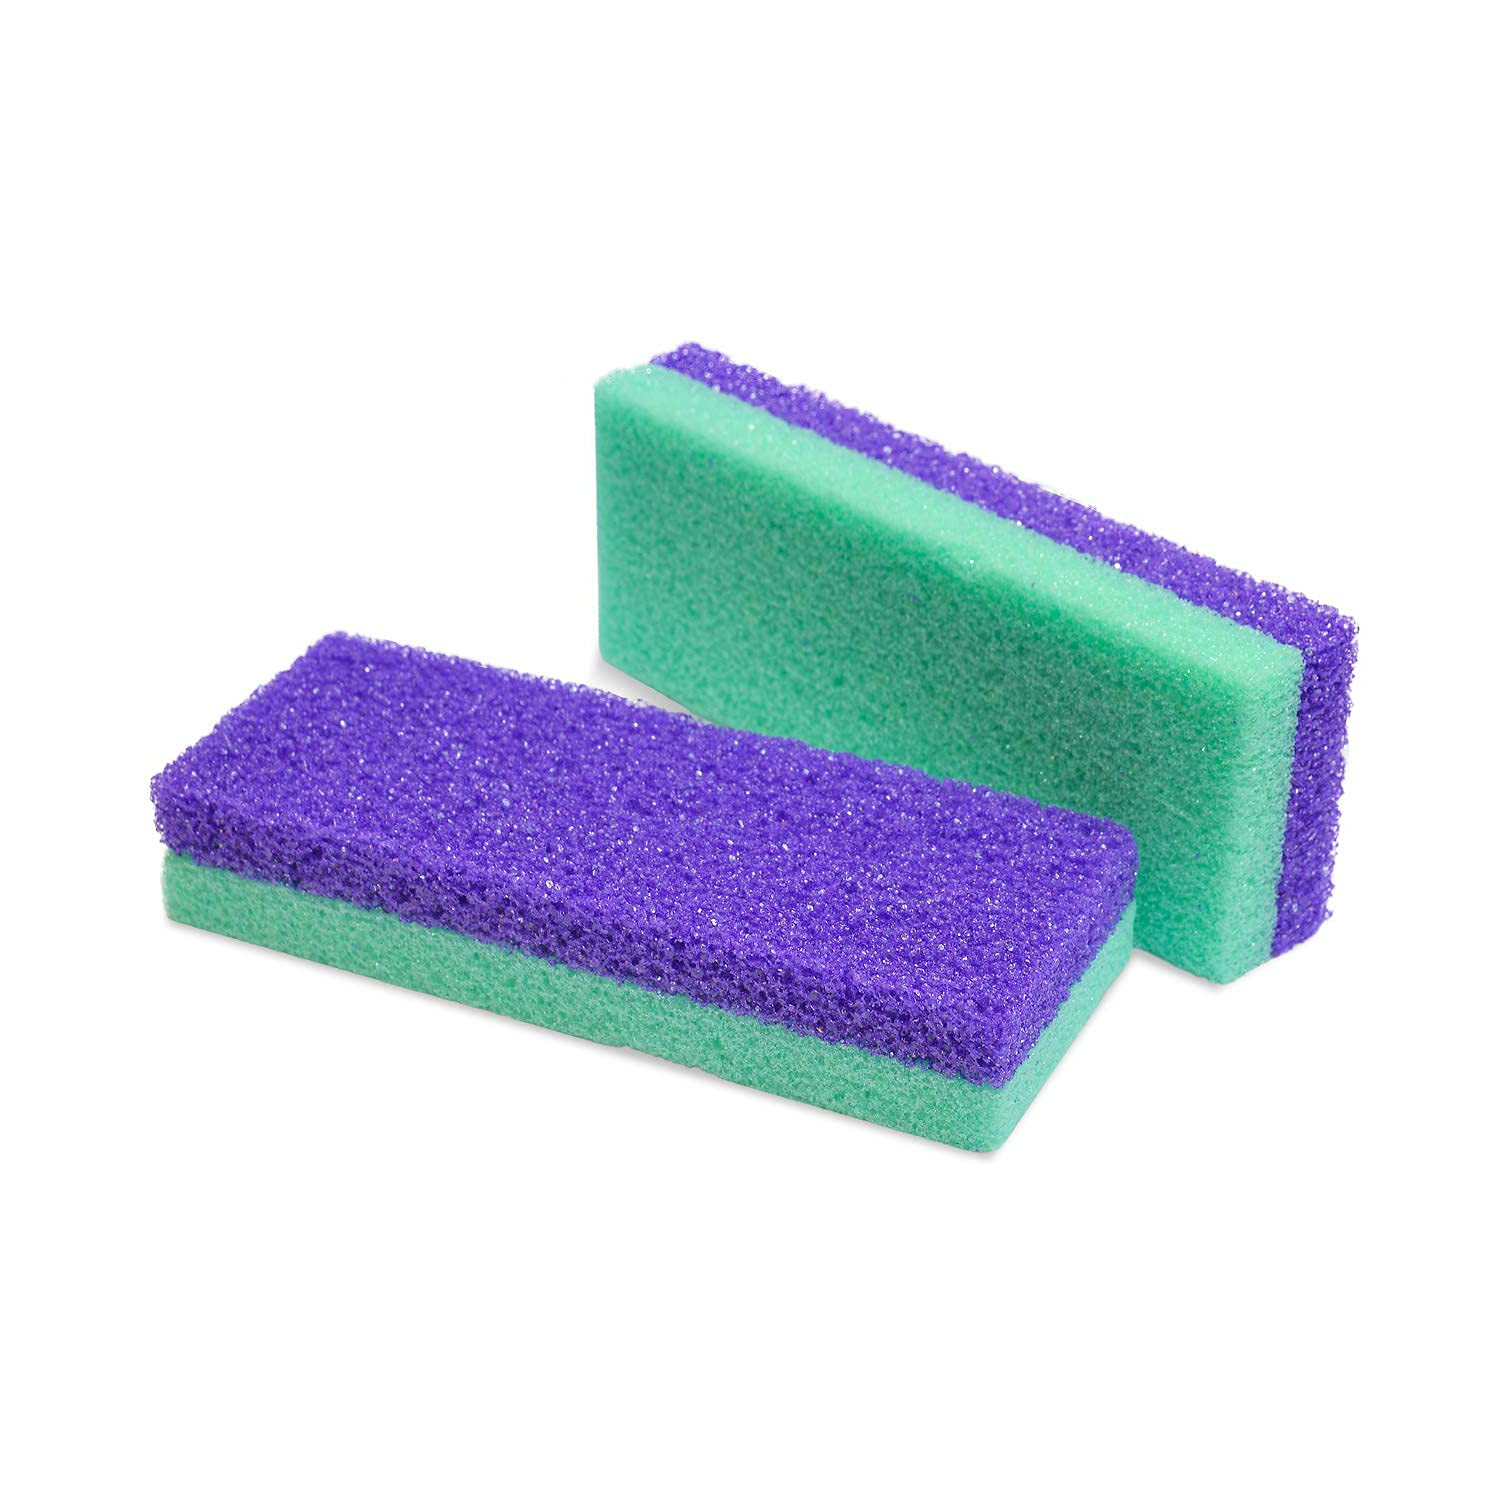 Maccibelle Salon Foot Pumice and Heels for Feet Cal Scrubber Limited time 70% OFF Outlet sale